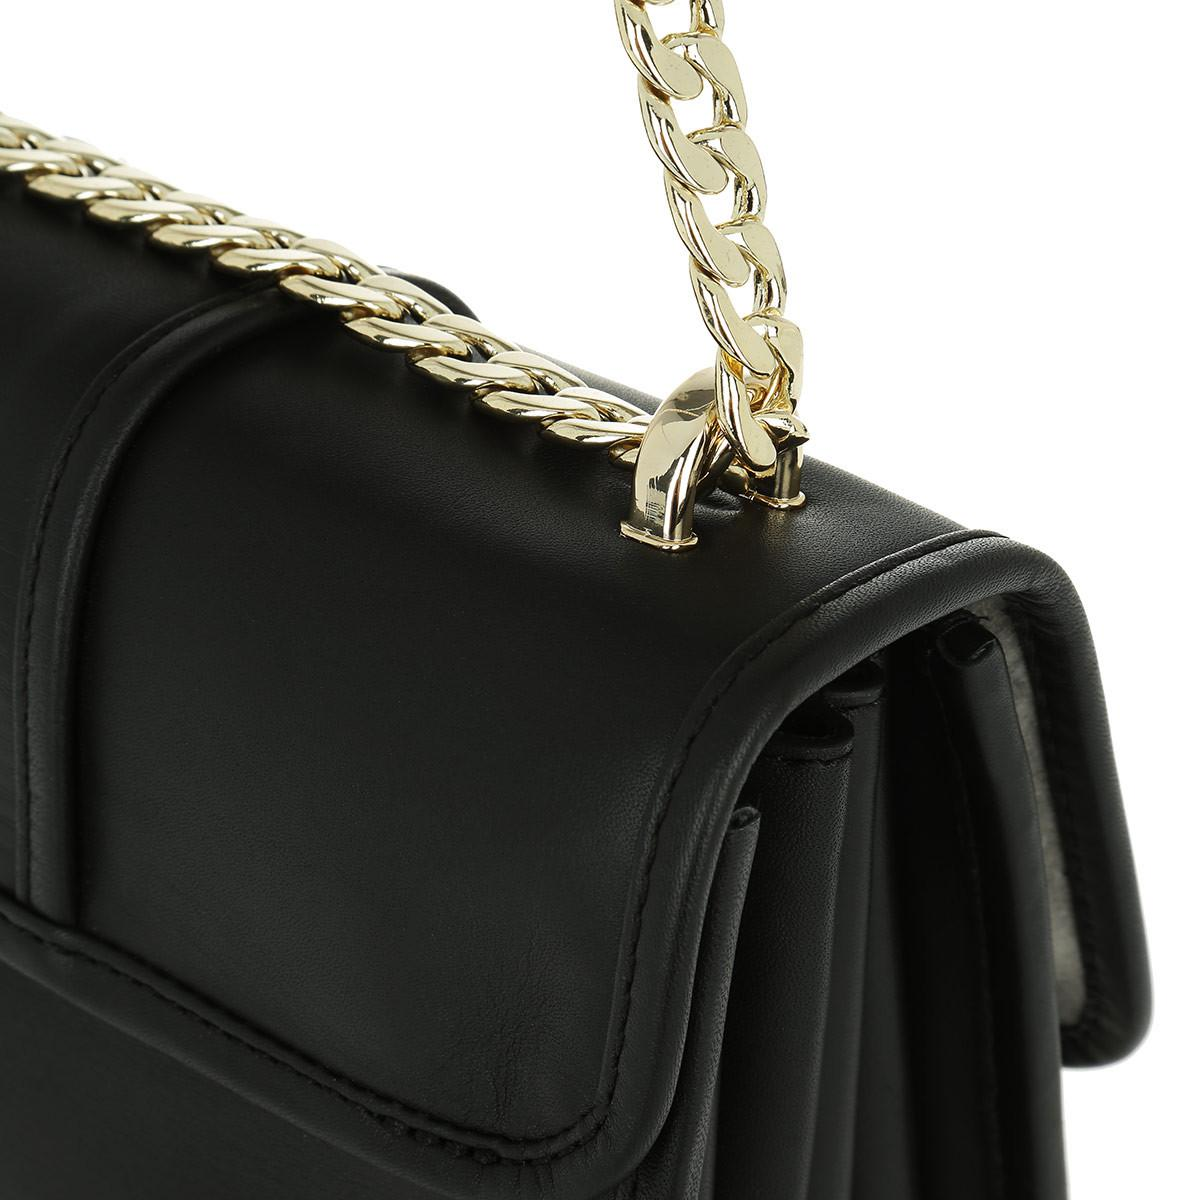 8656bab682fc Tommy Hilfiger Tommy Buckle Leather Crossover Black in Black - Lyst